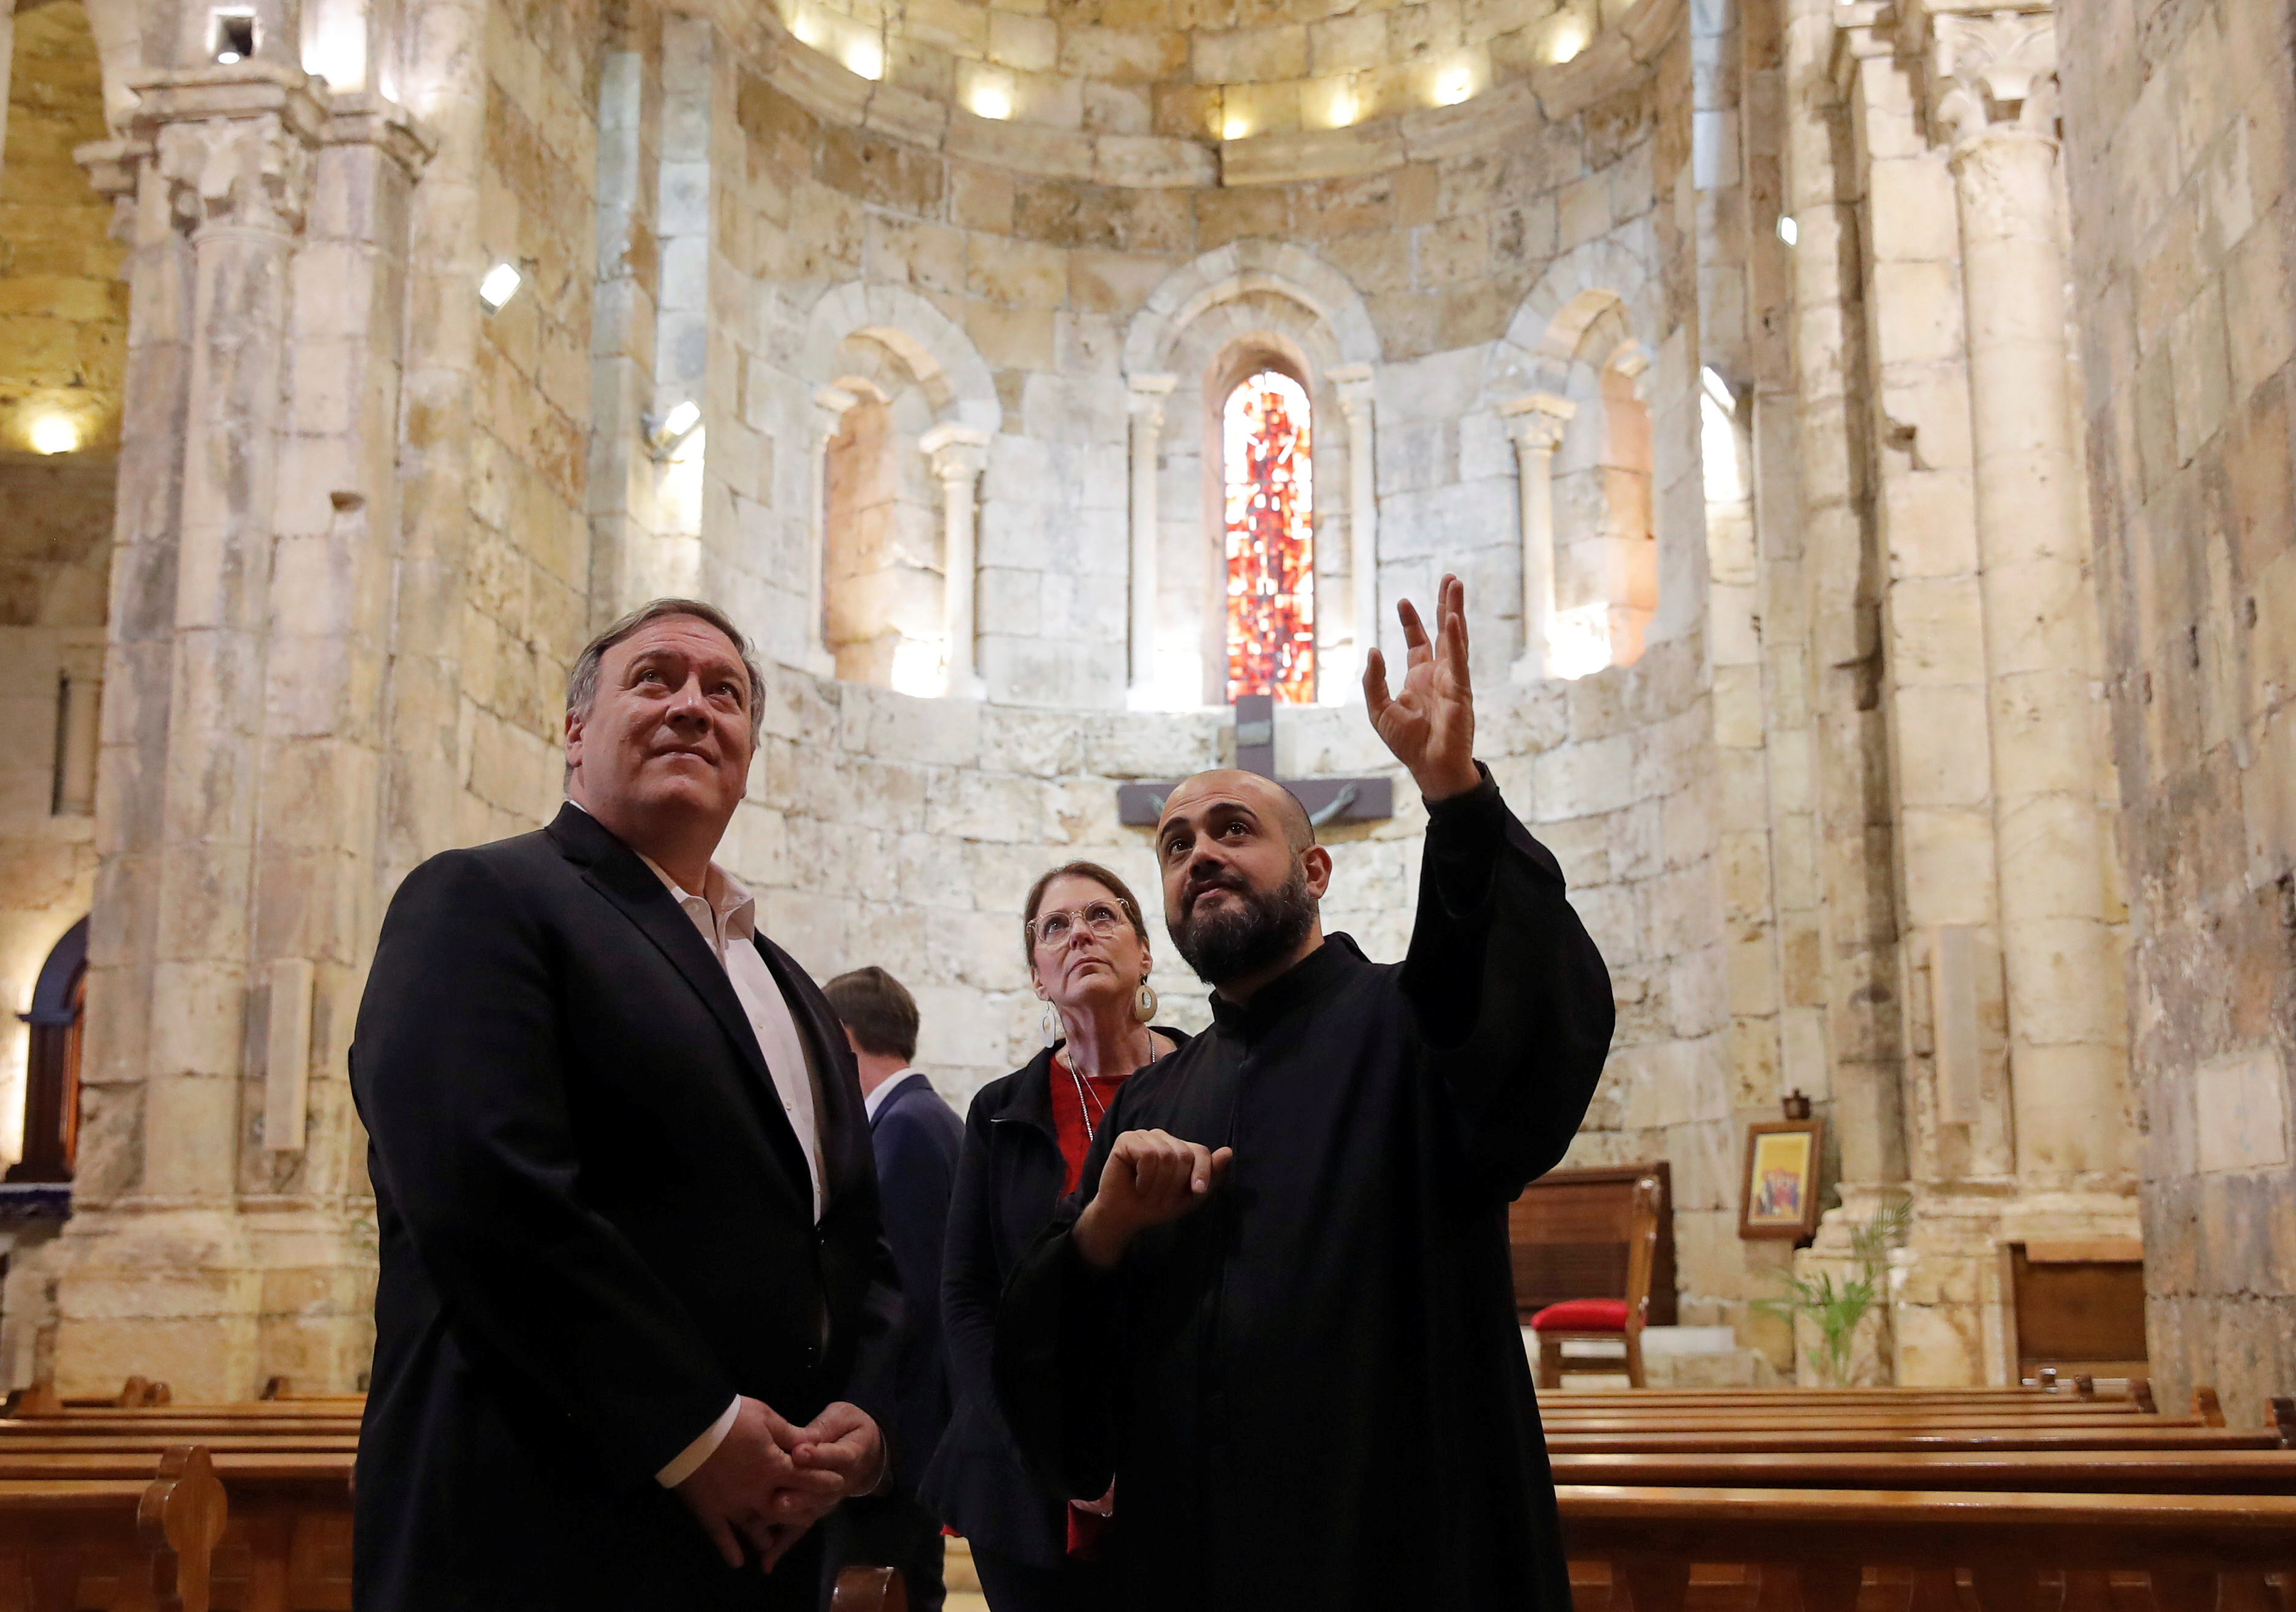 U.S. Secretary of State Mike Pompeo and his wife Susan visit a church at Byblos, Lebanon March 23, 2019. REUTERS/Jim Young/Pool